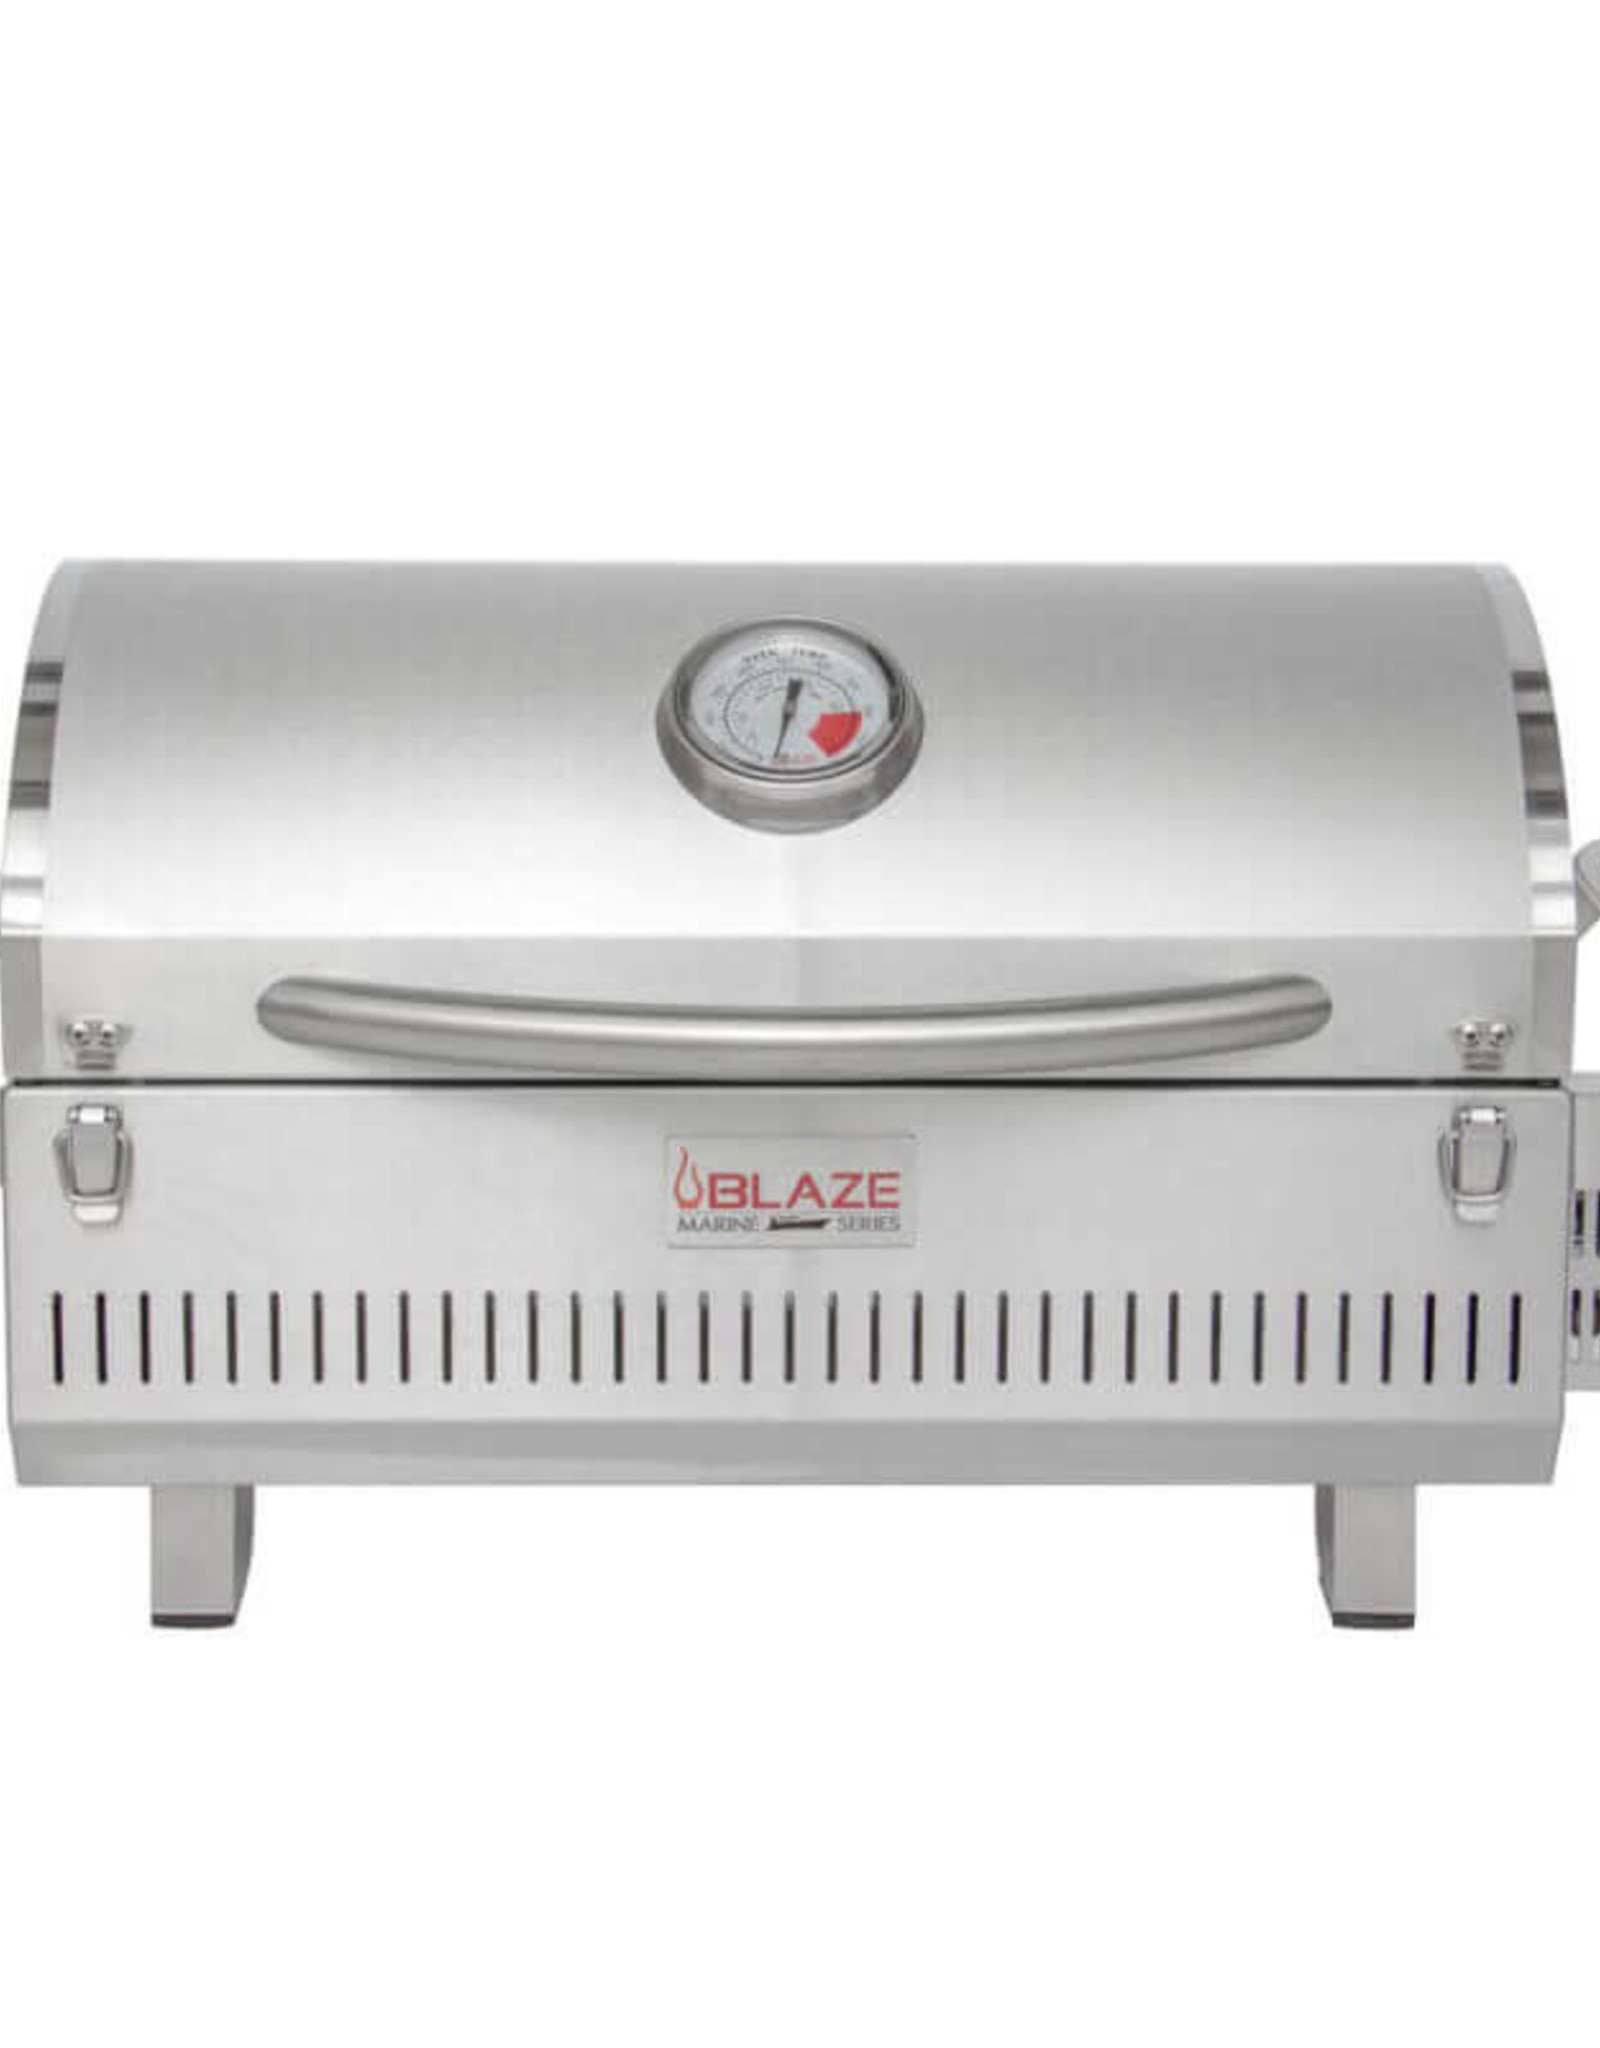 Blaze Outdoor Products Blaze Pro Portable Marine Grade Gas Grill - BLZ-1PRO-MG-NG